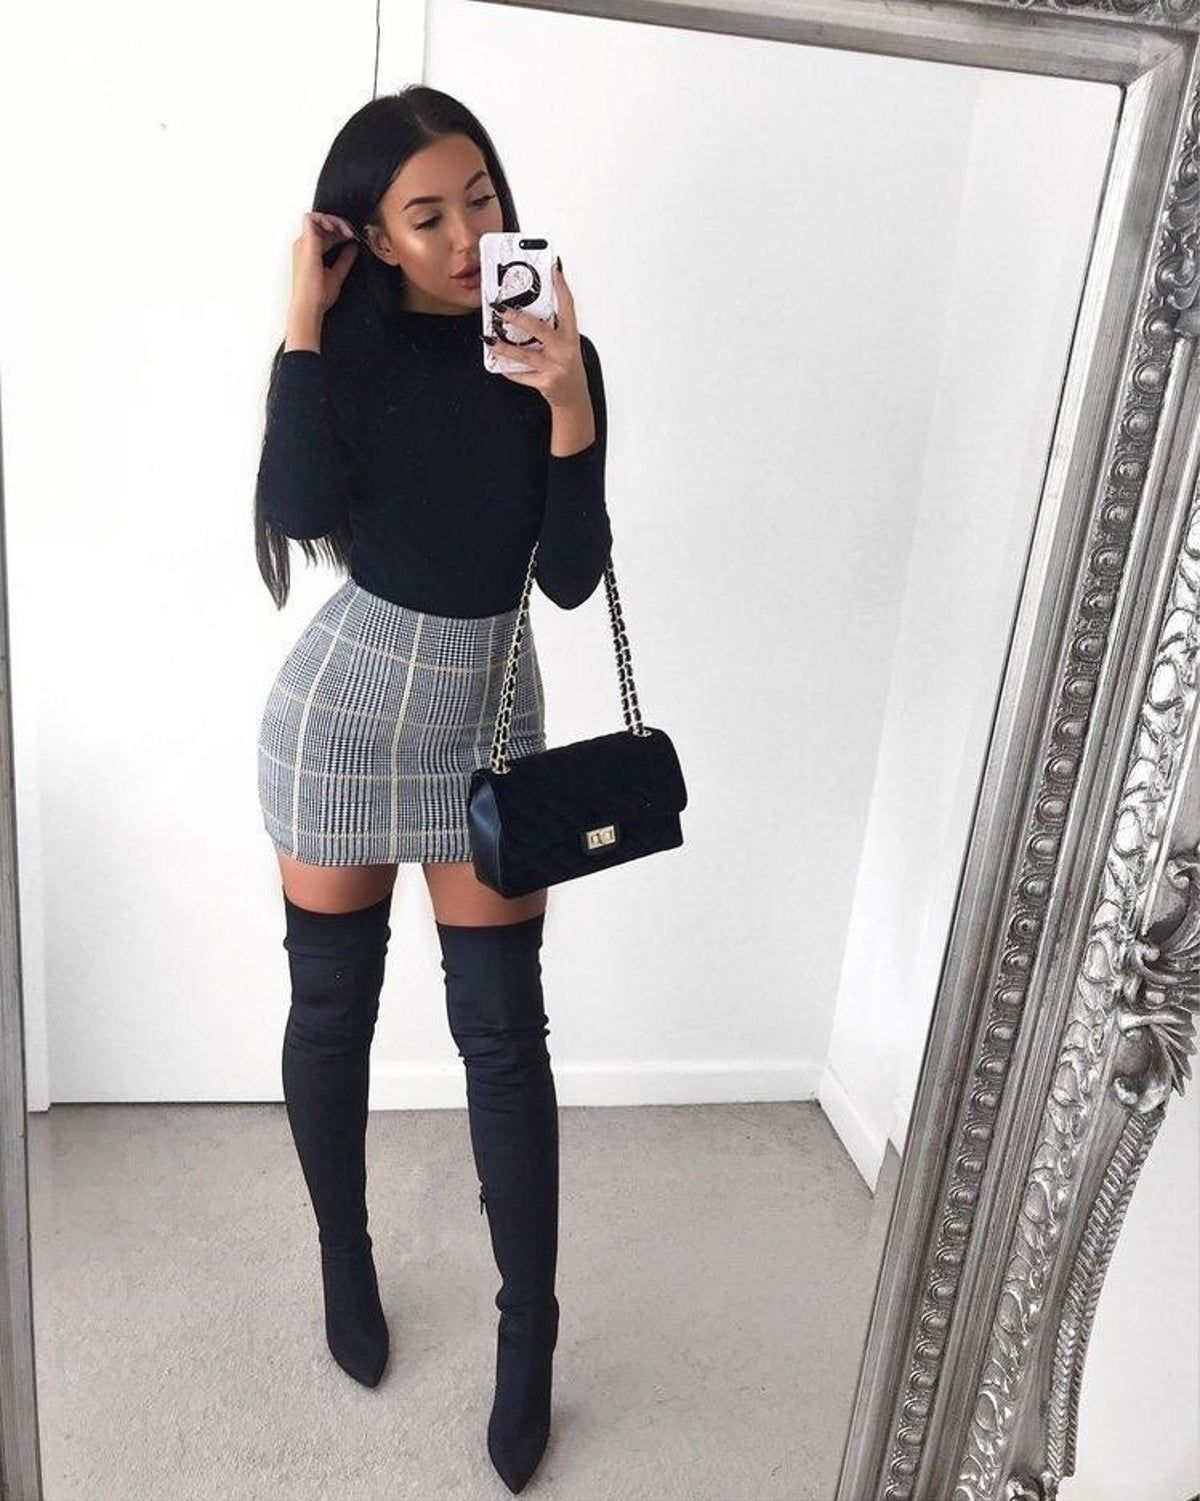 Thigh High Boots Winter Date Night Outfits Night Outfits Fashion Inspo Outfits [ 1501 x 1200 Pixel ]